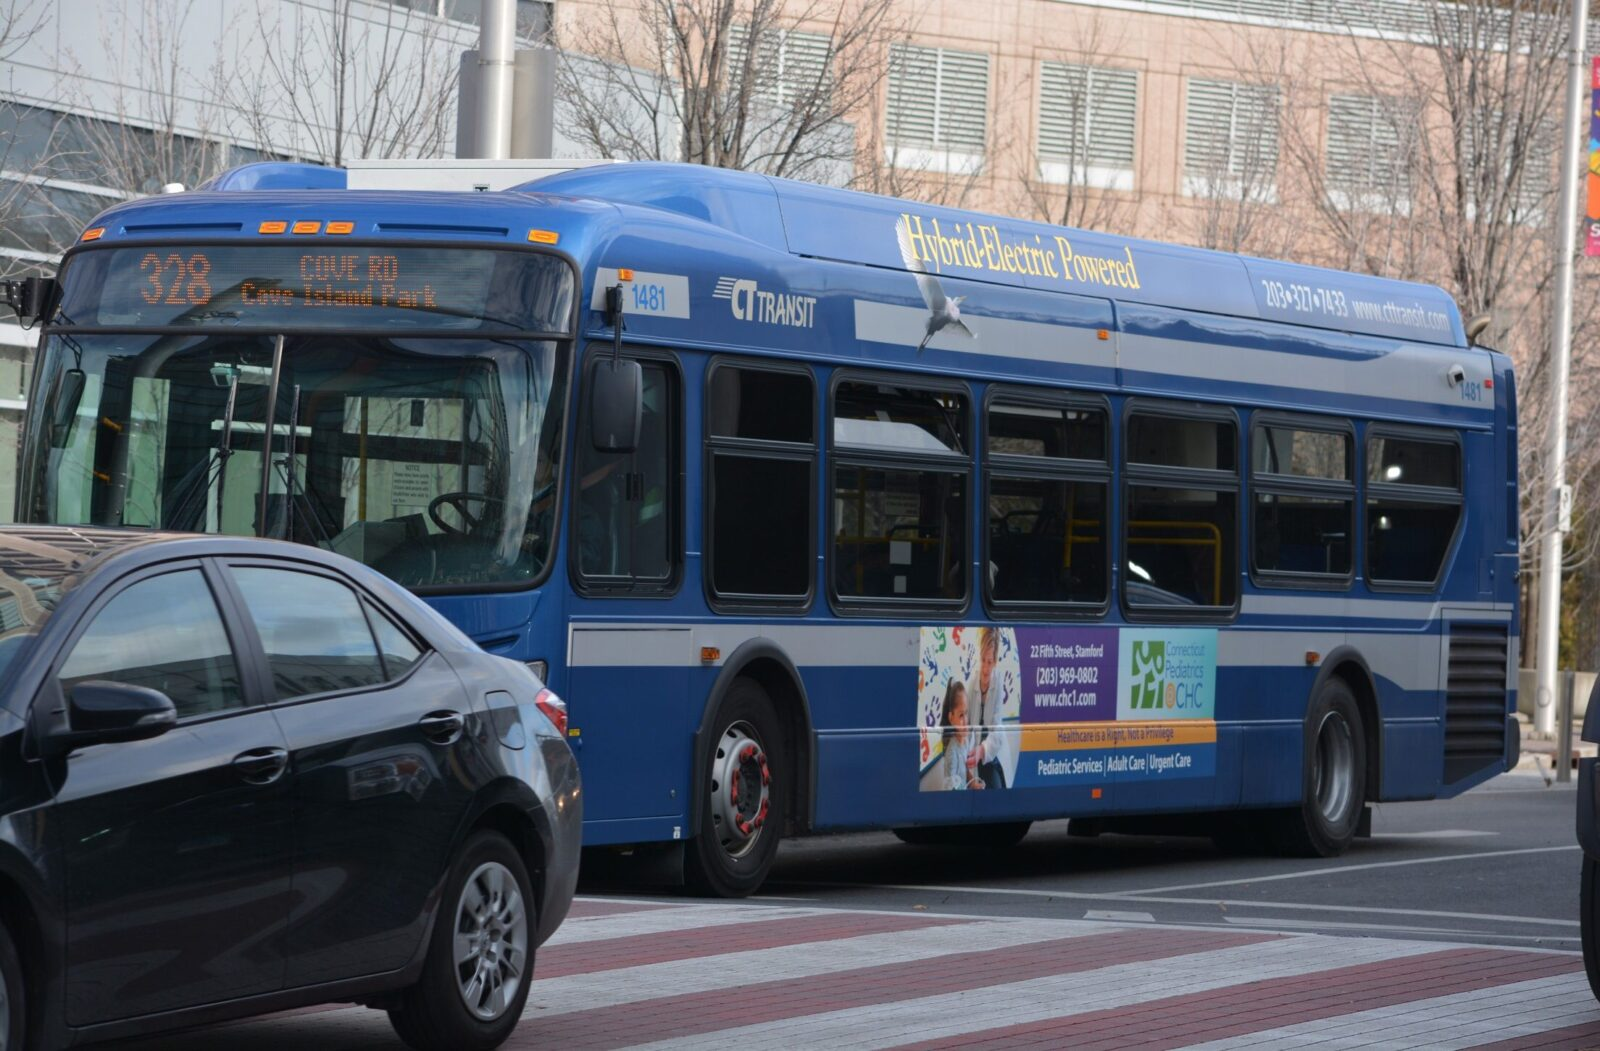 Community Health Center Stamford Bus Advertising Campaign